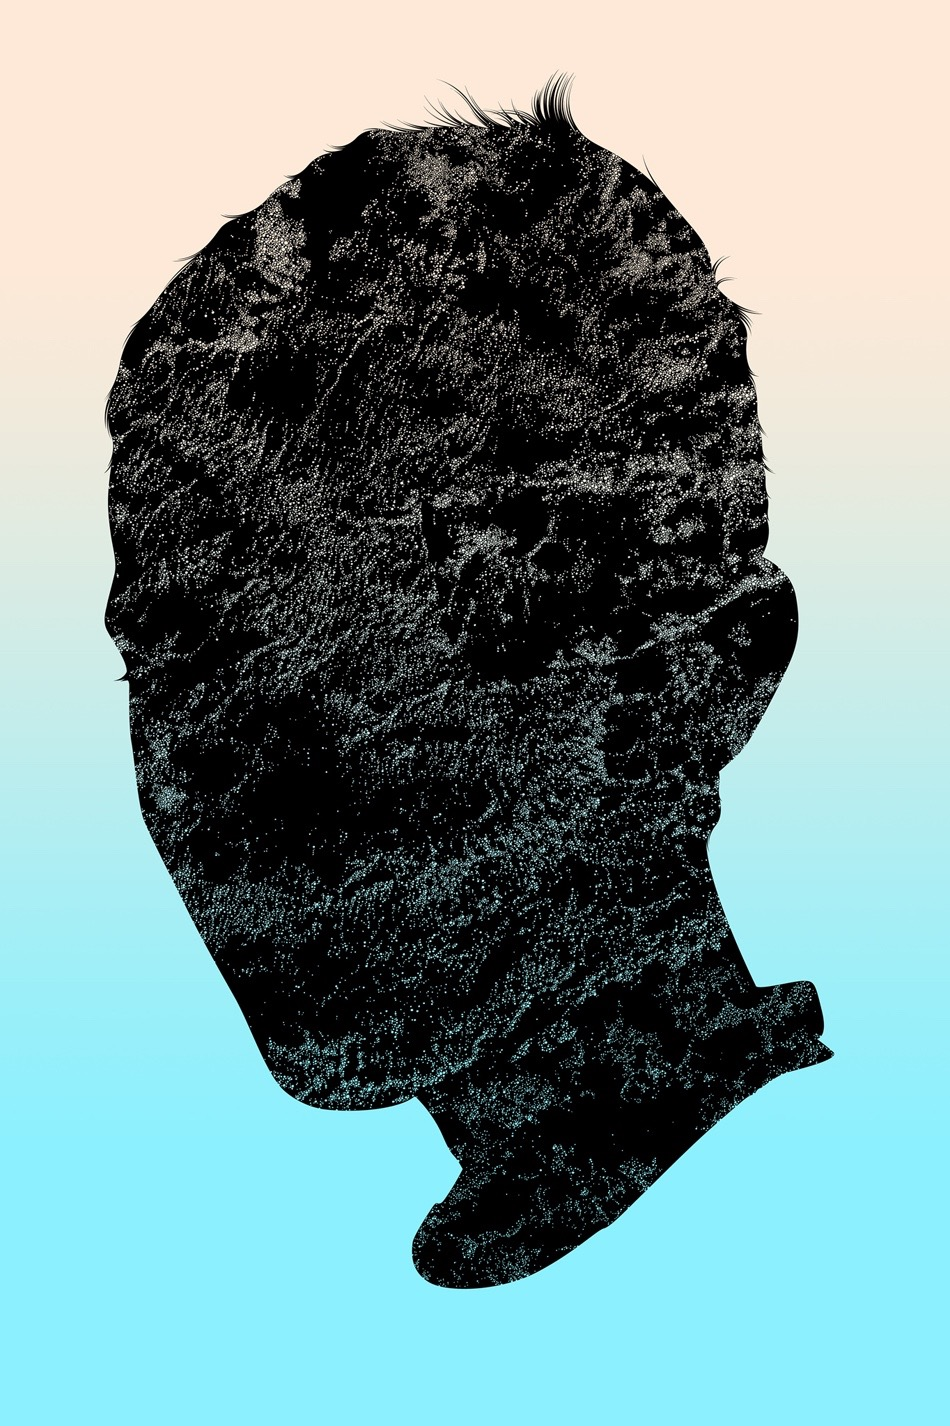 illustration, illustrations, illustrator, illustrators, head, heads, texture, marble, marbled, gradient, float, floating, boy, boys, man, men, person